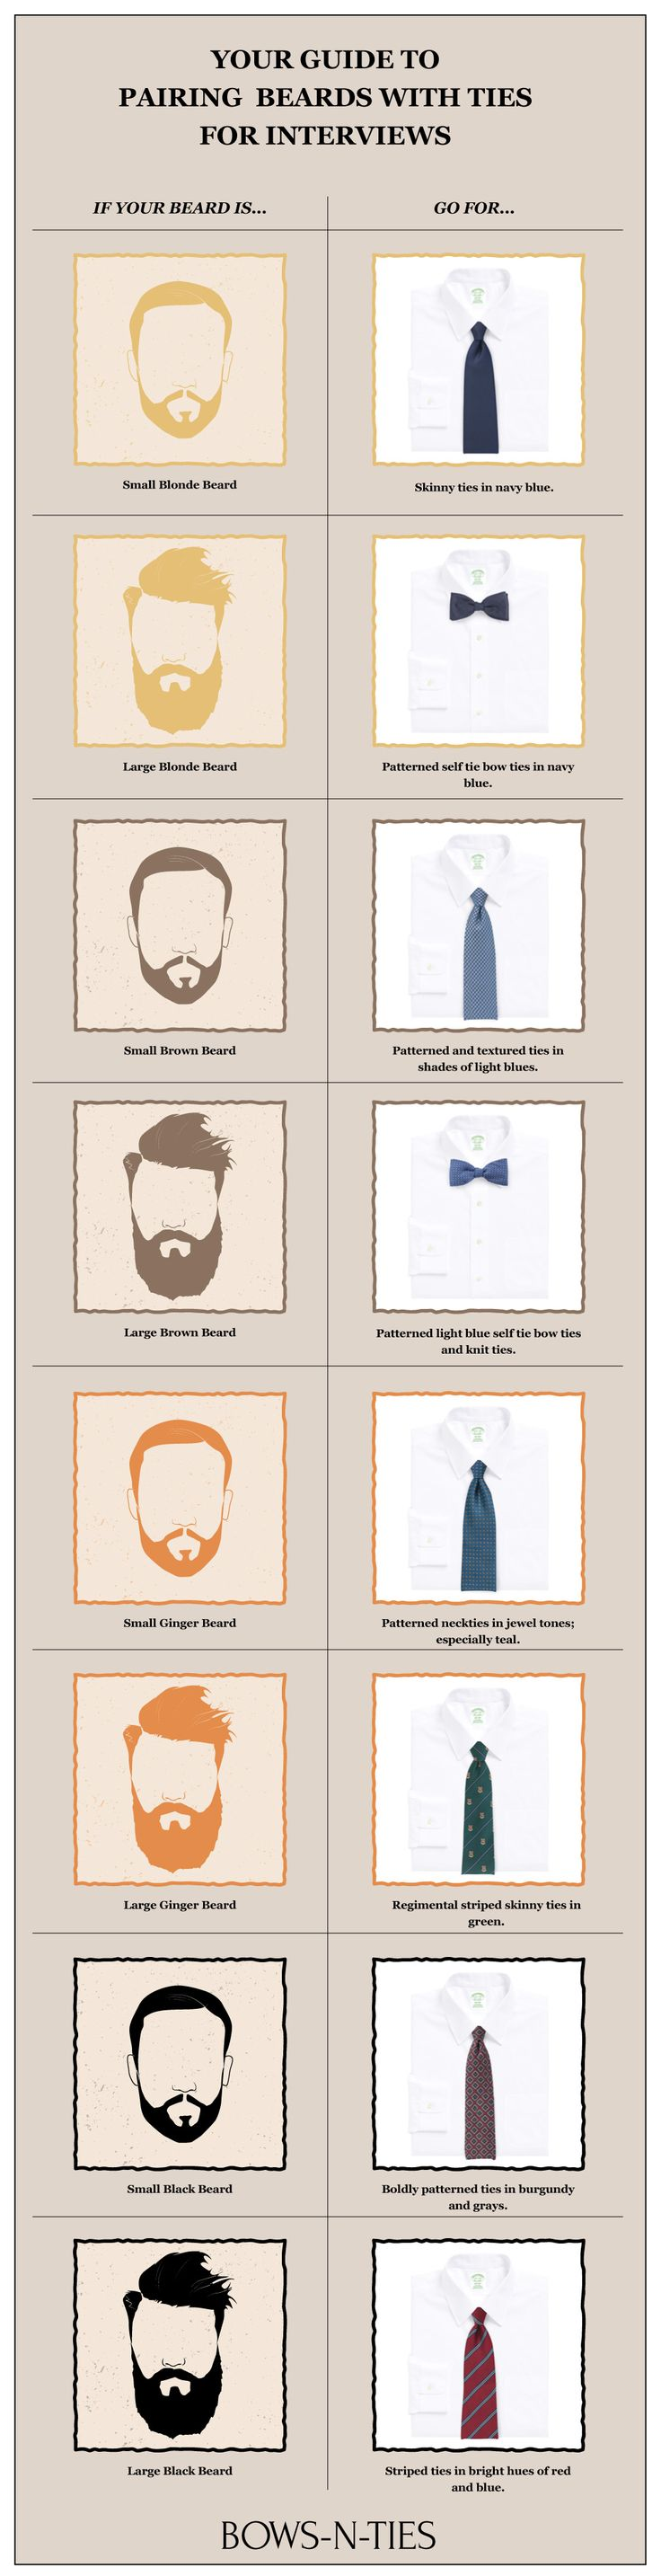 Best Interview Looks For Men With Beards. | davidshadpour.com